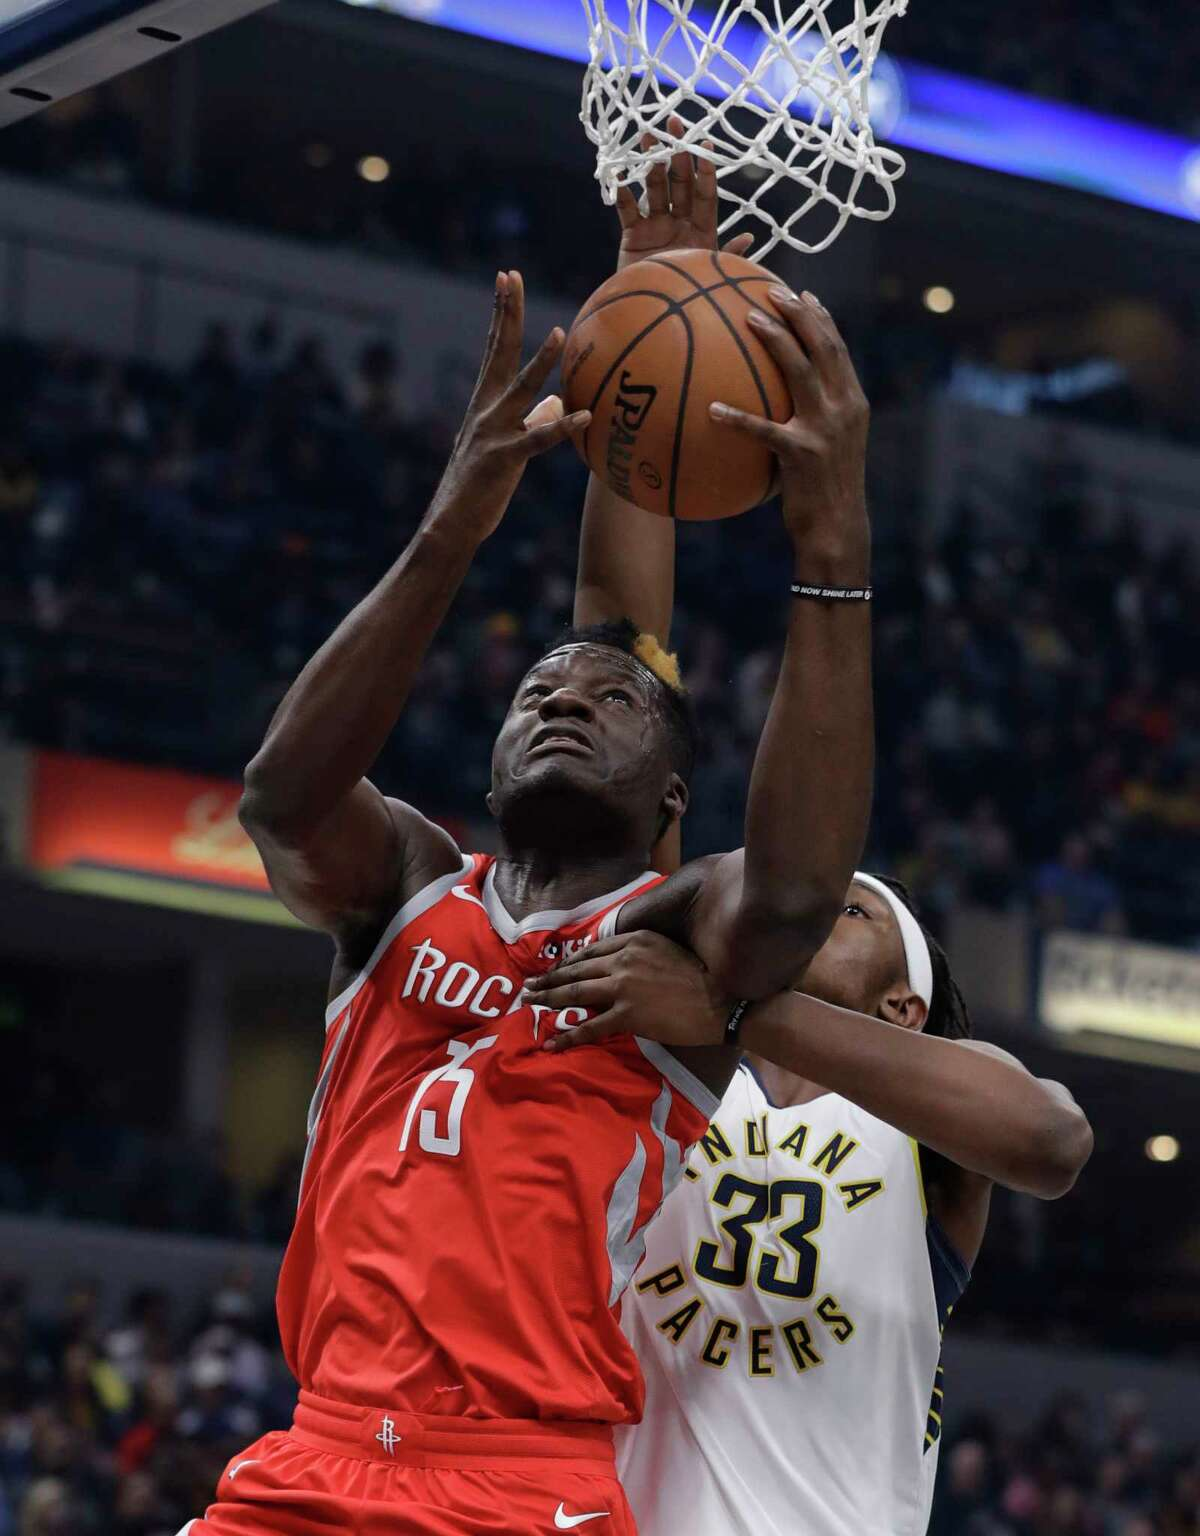 Houston Rockets' Clint Capela (15) shoots against Indiana Pacers' Myles Turner during the first half of an NBA basketball game, Monday, Nov. 5, 2018, in Indianapolis. (AP Photo/Darron Cummings)